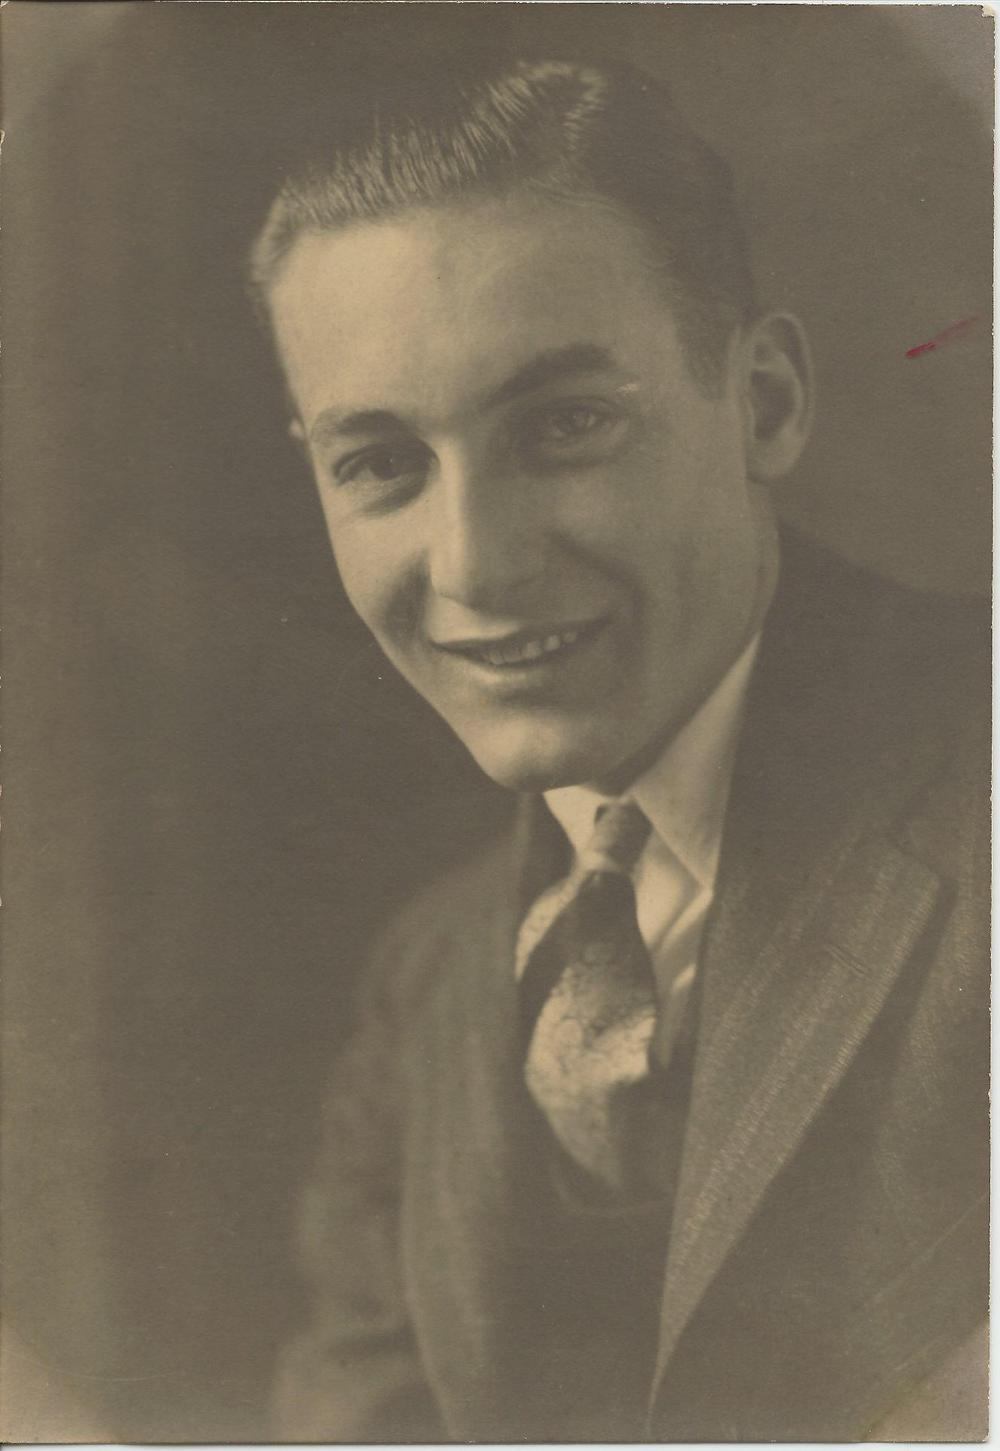 Auddy+Parker+young+(born+11-25-1908).jpg